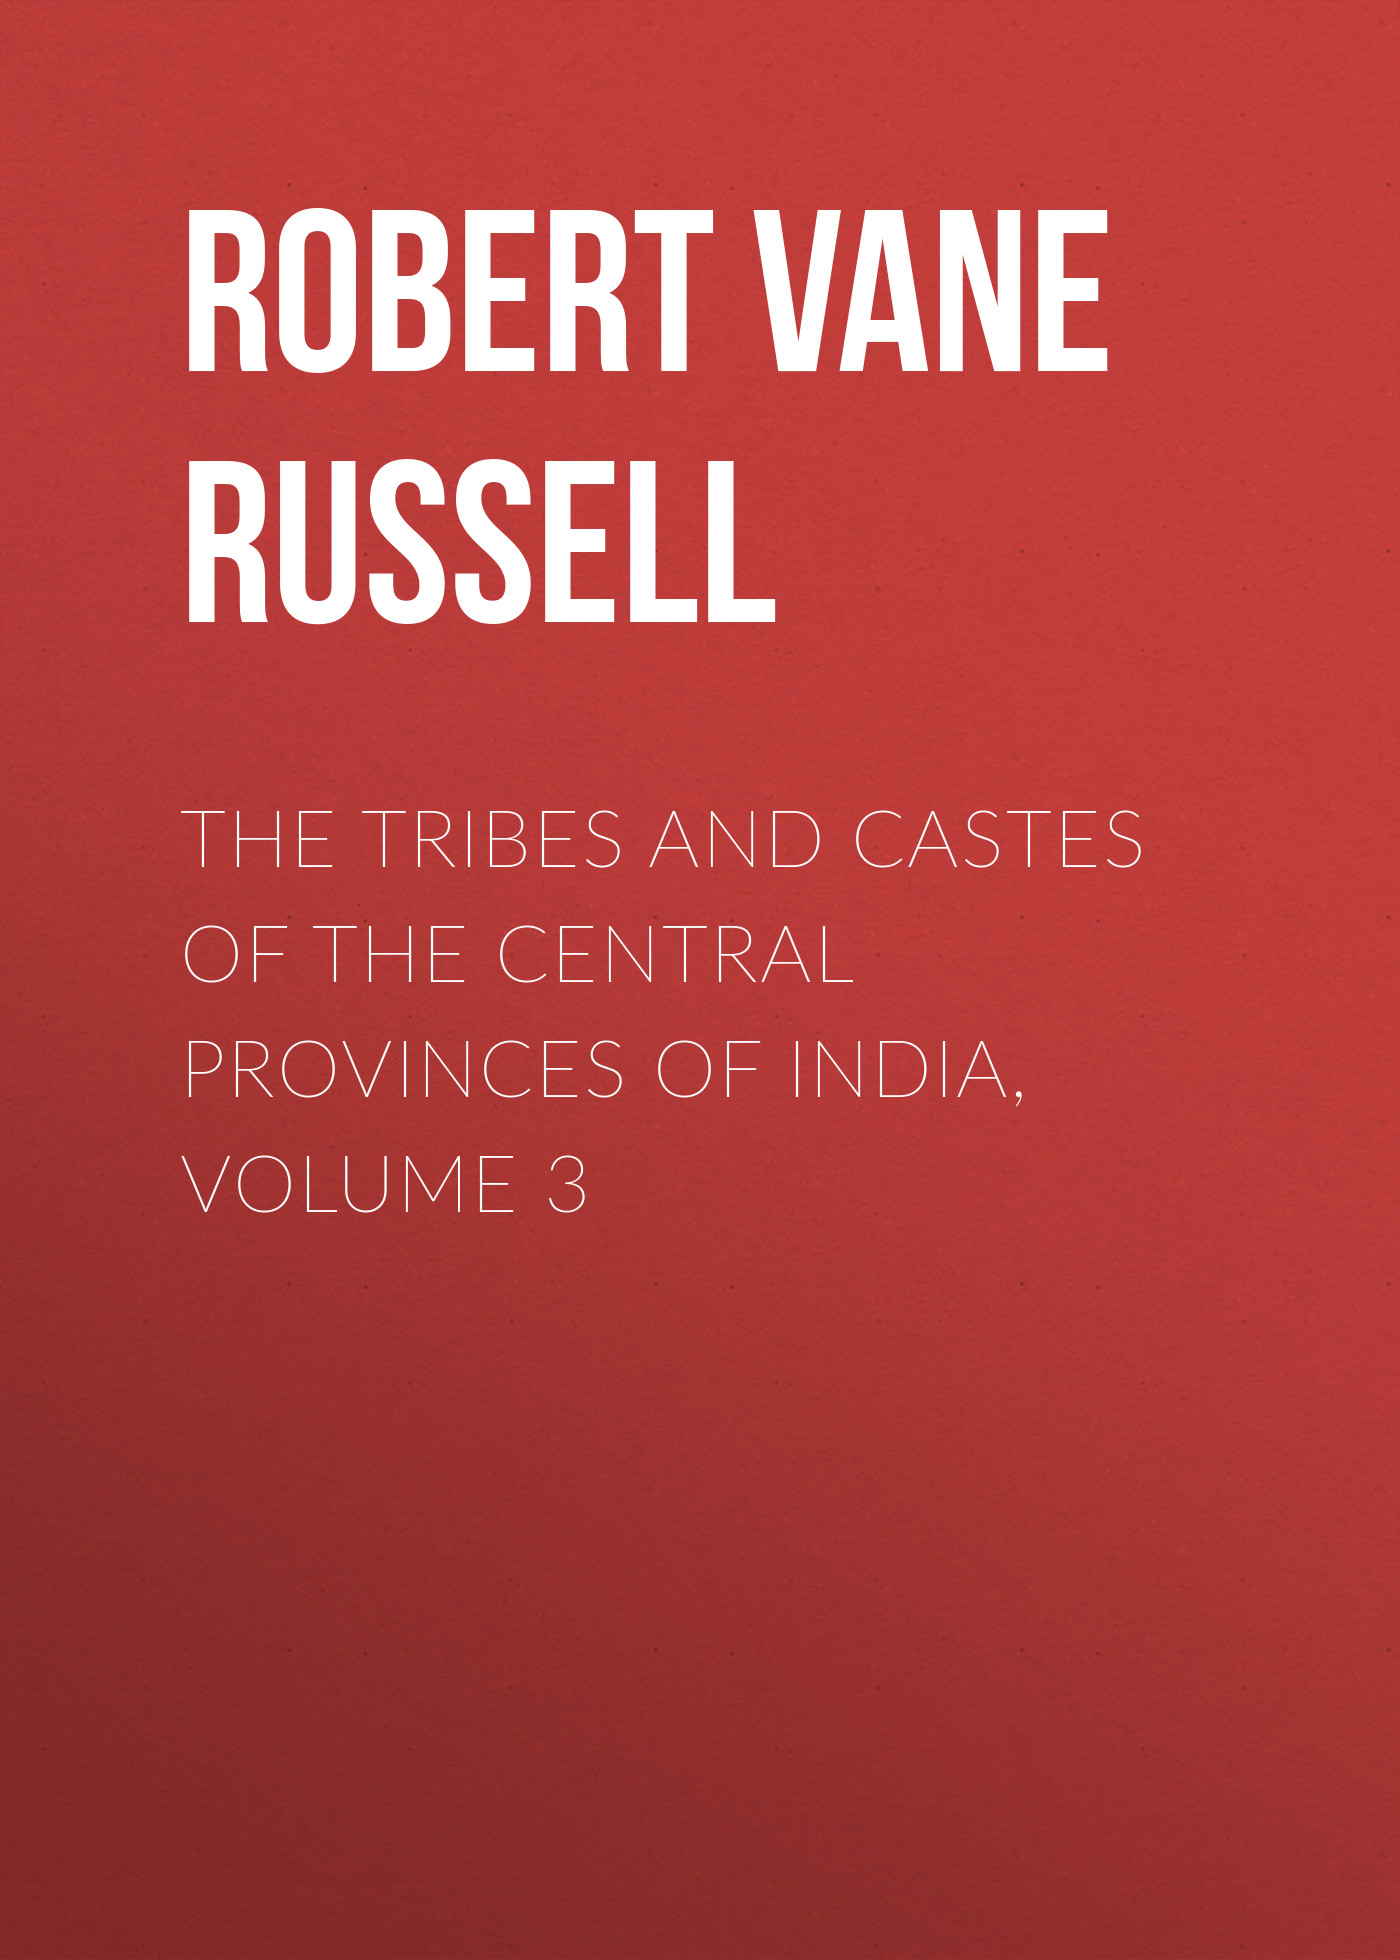 Robert Vane Russell The Tribes and Castes of the Central Provinces of India, Volume 3